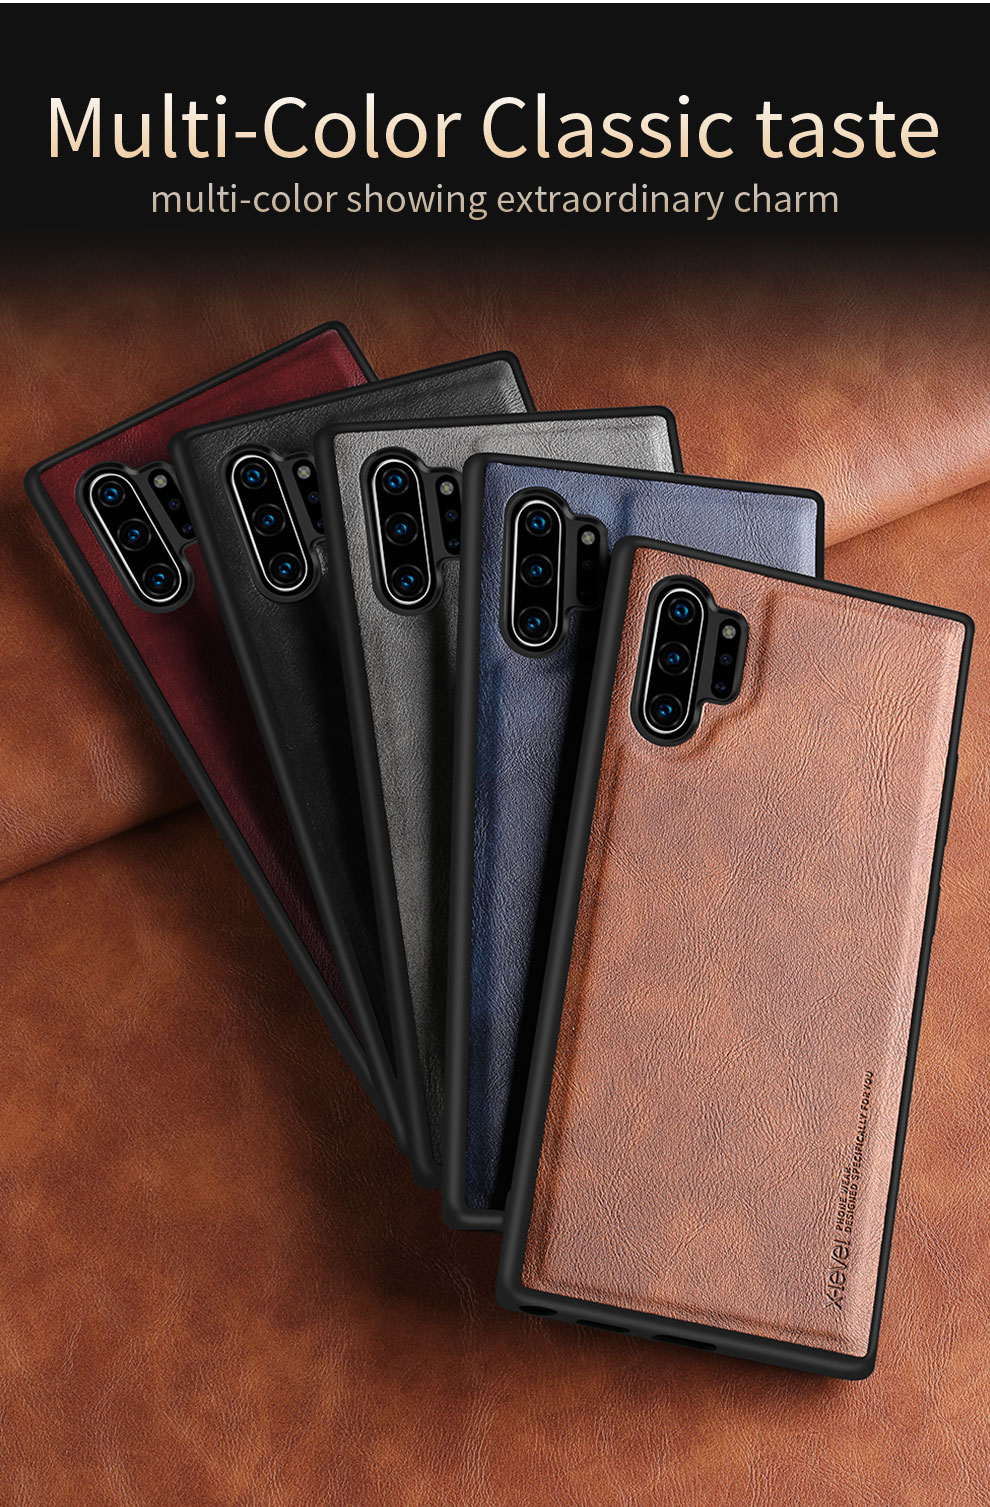 Hddef9751e2b94b4c9f0ed1156a5c7c13M X-Level Leather Case For Samsung Note 10 Plus Soft Silicone Edge Back Phone Cover For Samsung Galaxy Note 10 Case Note10 Plus